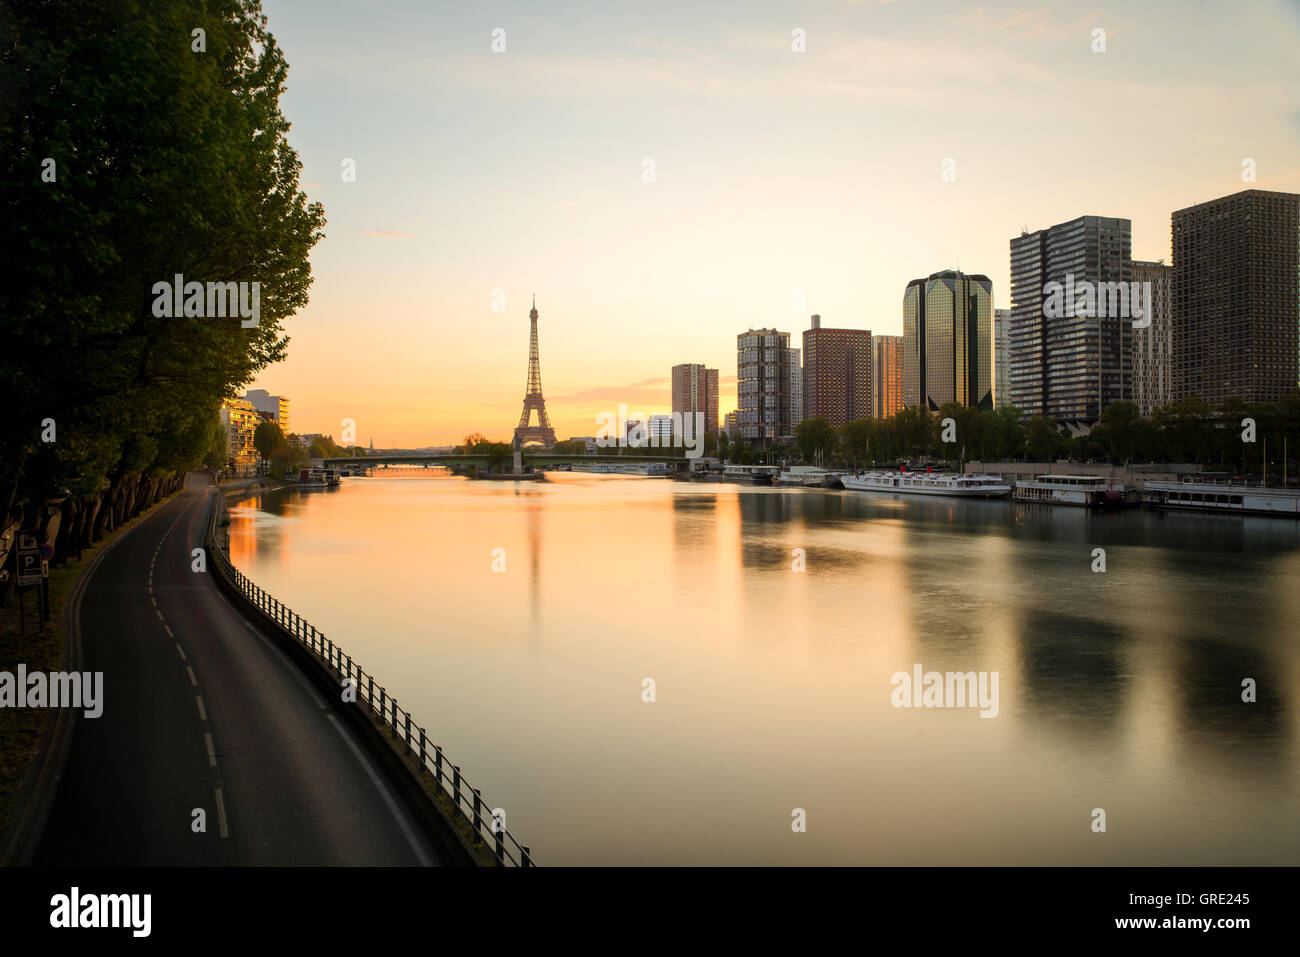 Paris skyline with Eiffel tower and Seine river in Paris, France.Beautiful sunrise in Paris, France. - Stock Image